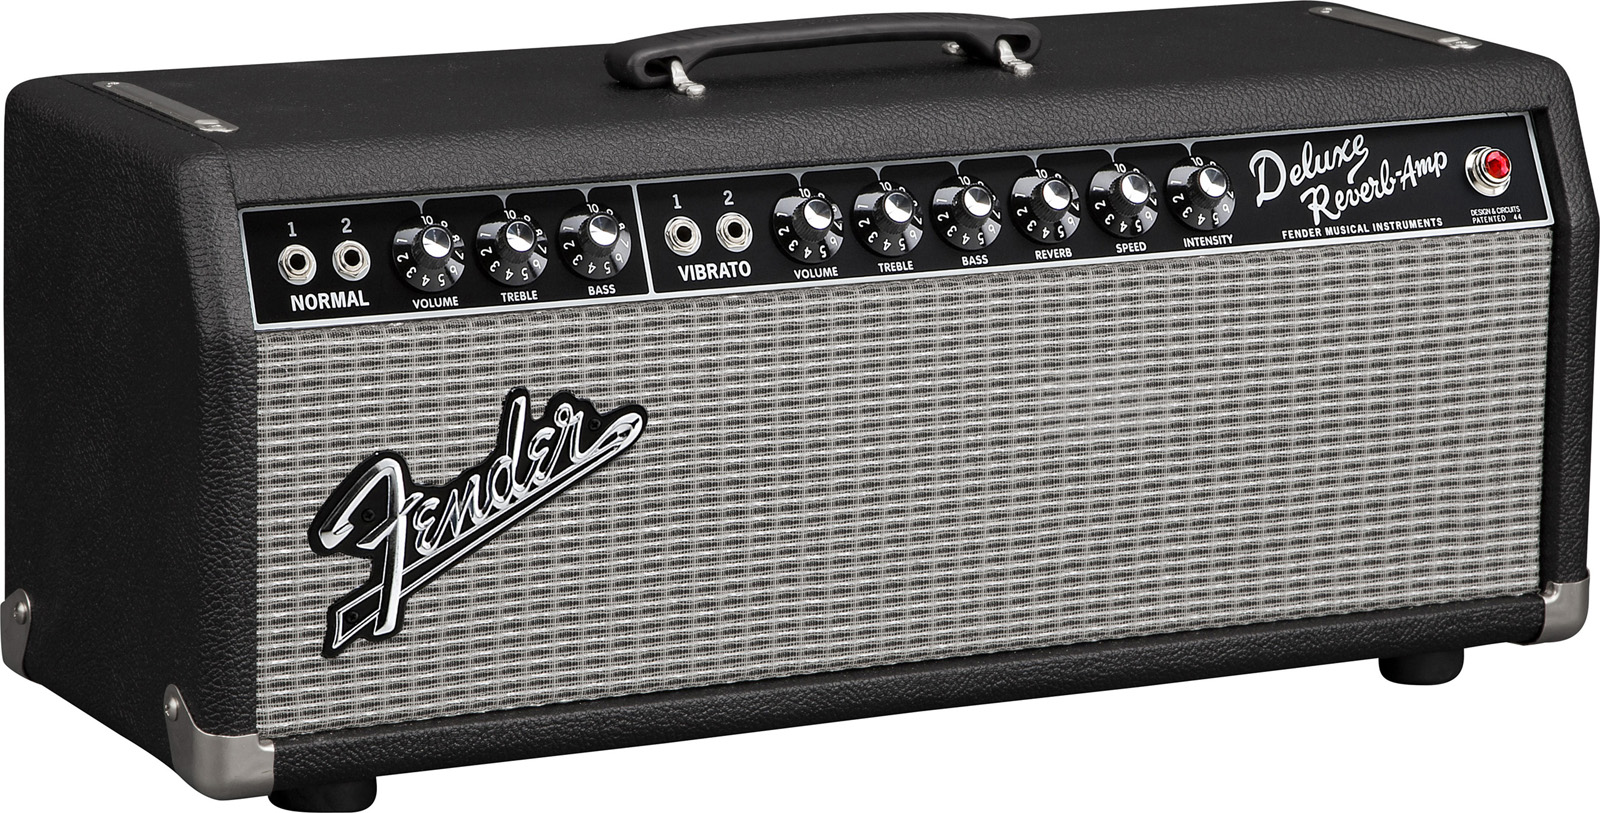 Fender Telecaster Electric Guitar Central No 1 In The World Greasebucket Tone Control Forum Pot 65 Deluxe Reverb Head